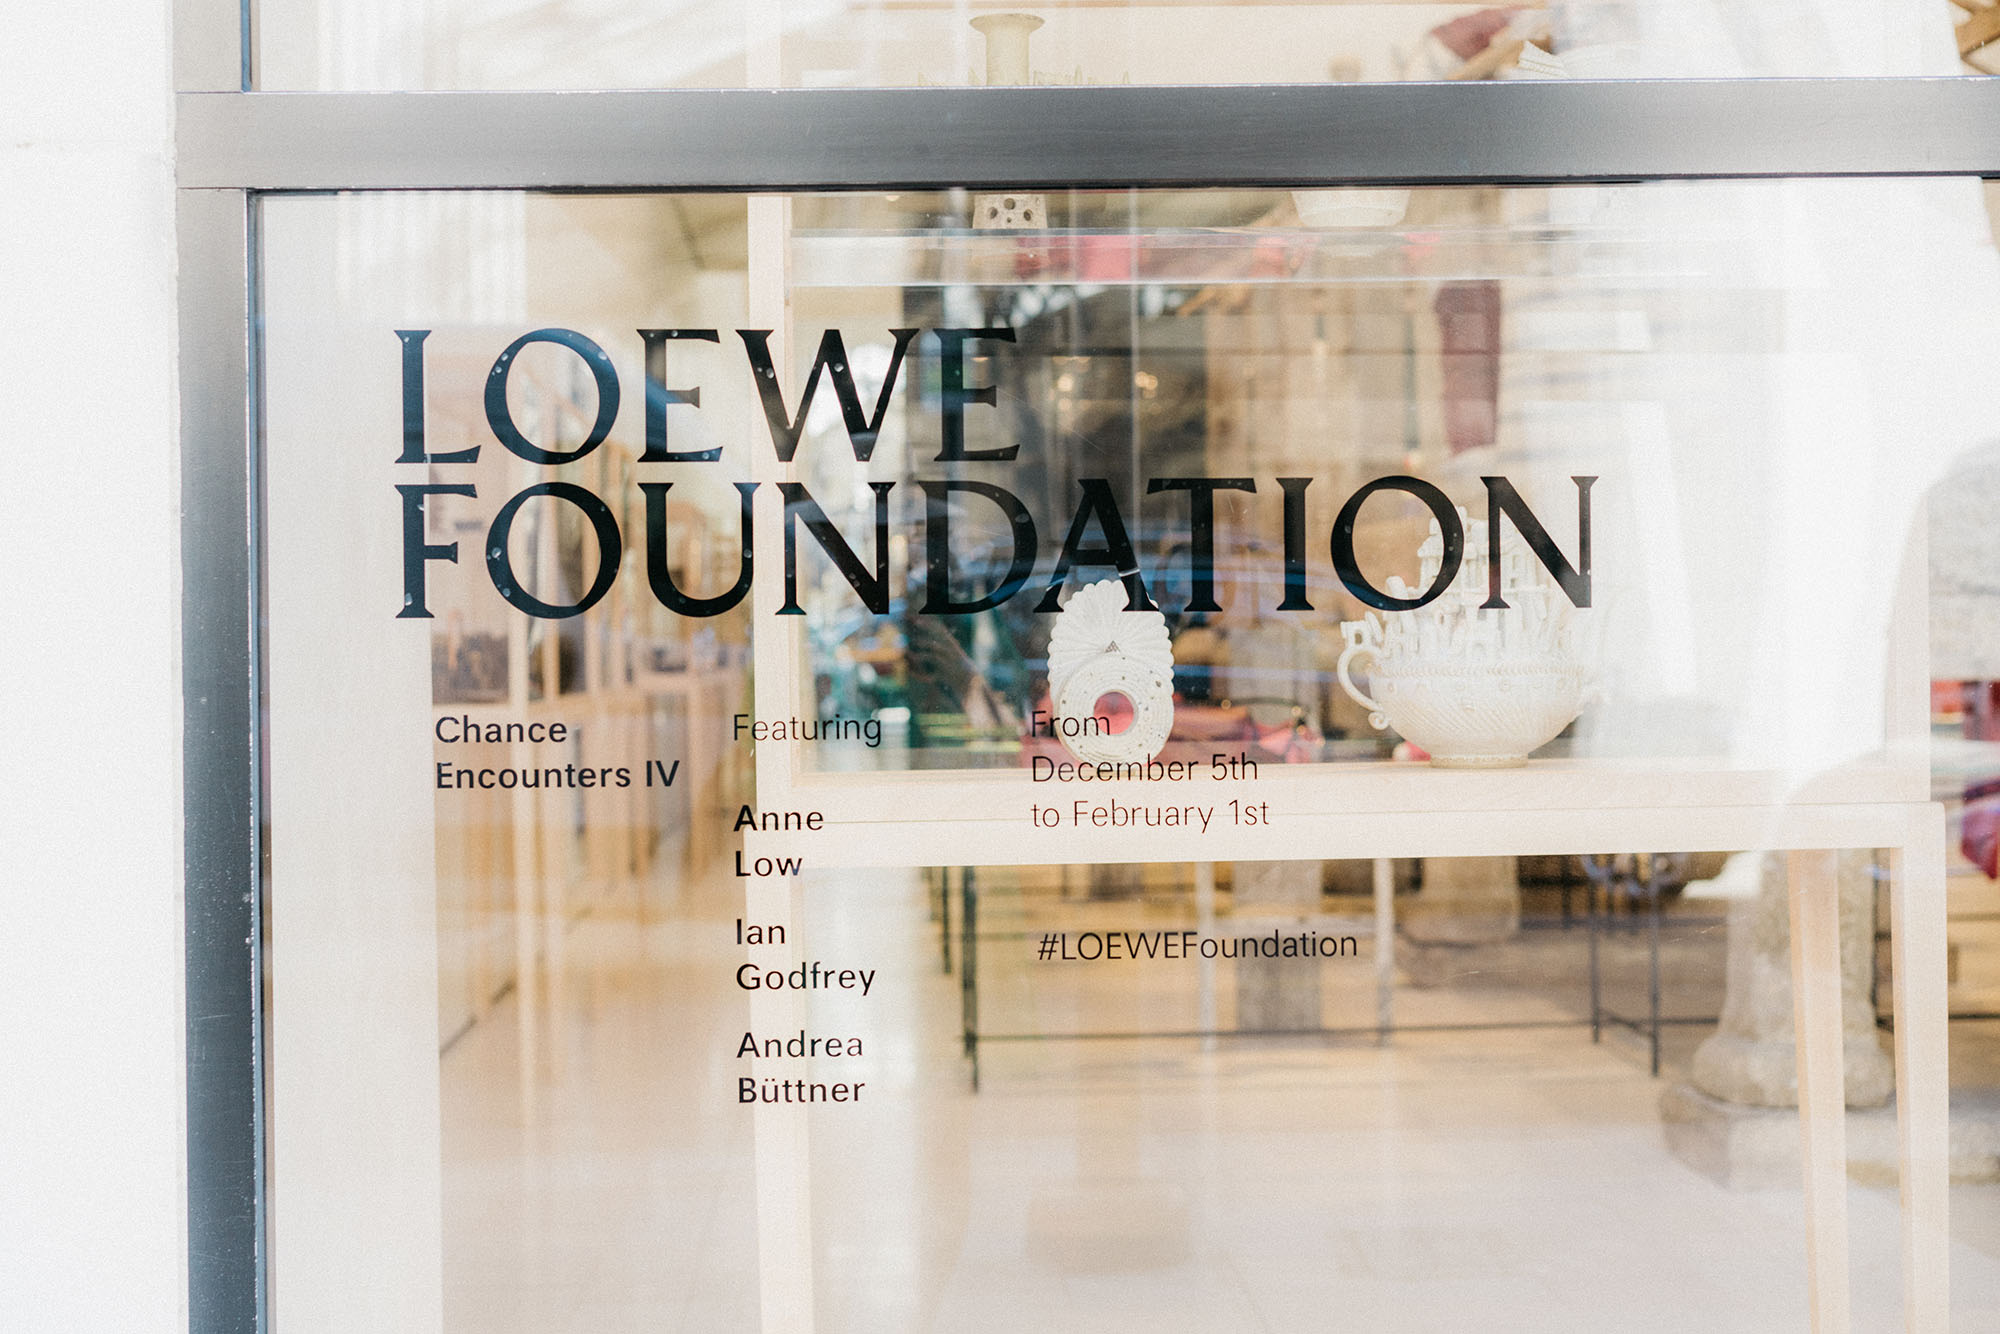 Loewe presents Chance Encounters IV